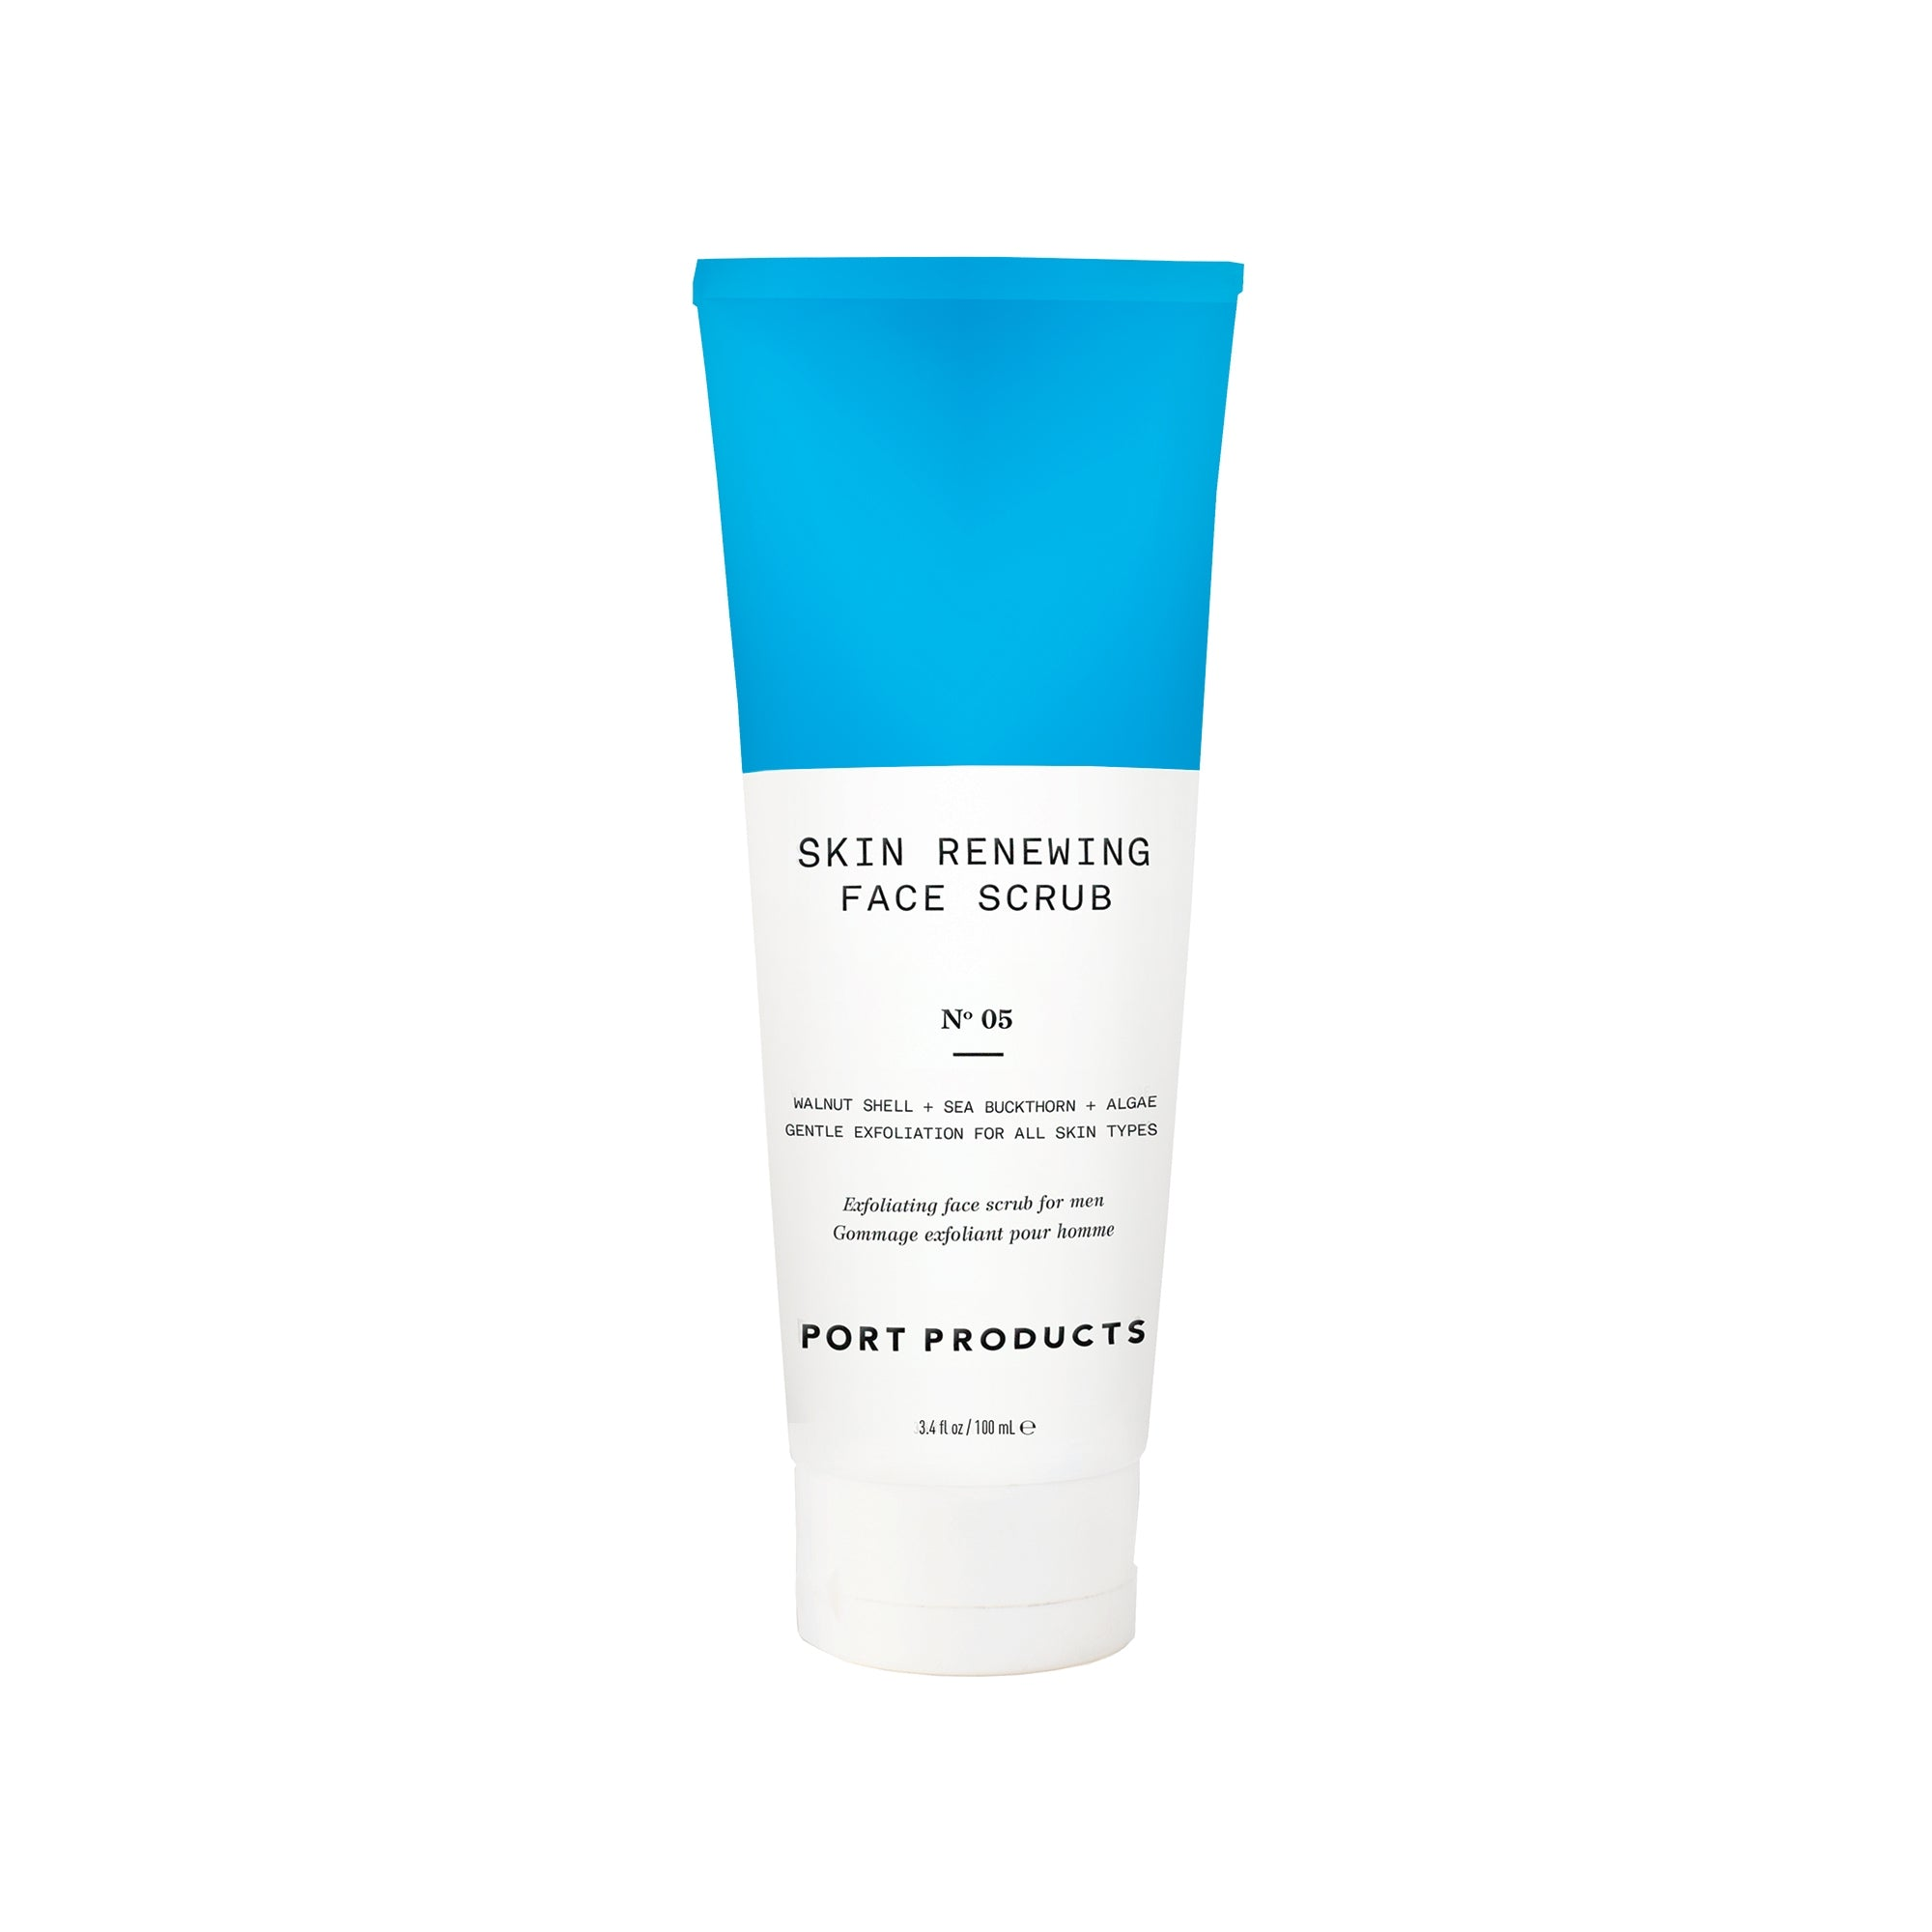 Port Products Skin Renewing Face Scrub - The Motley